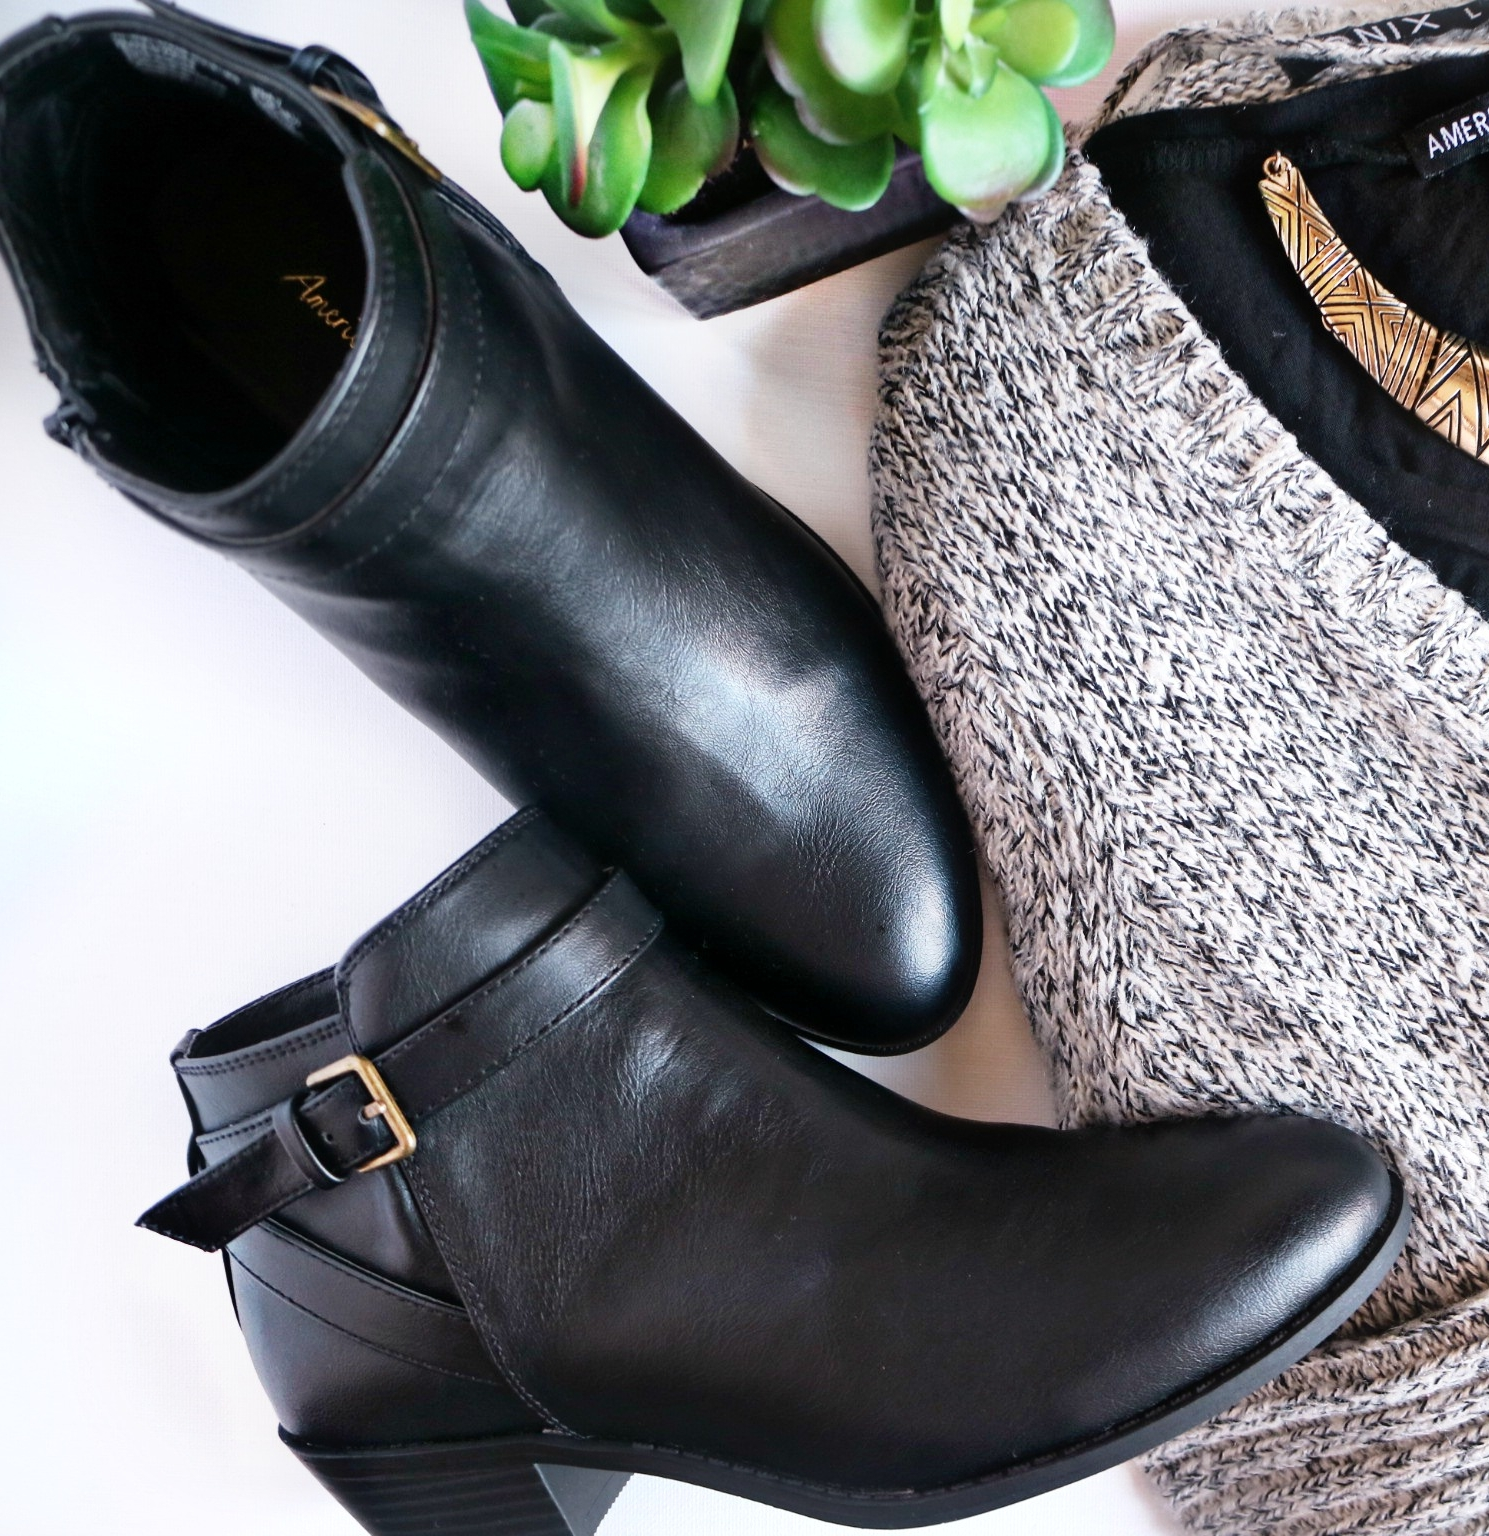 Booties - Bought October 02 - On Sale for $39.99 CAD